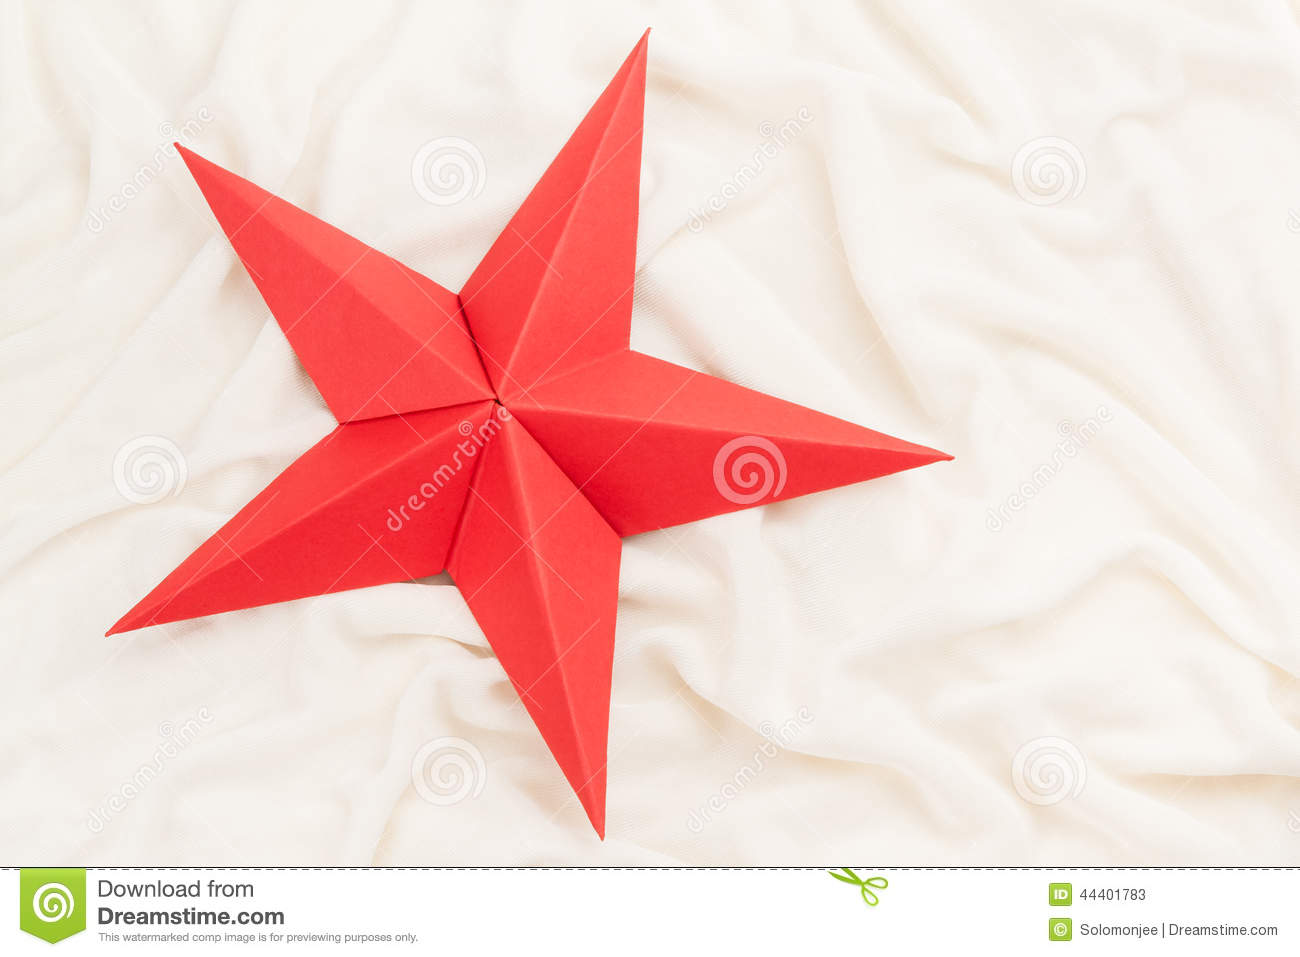 Folding 5 Pointed Origami Star Christmas Ornaments Tavin39s Red